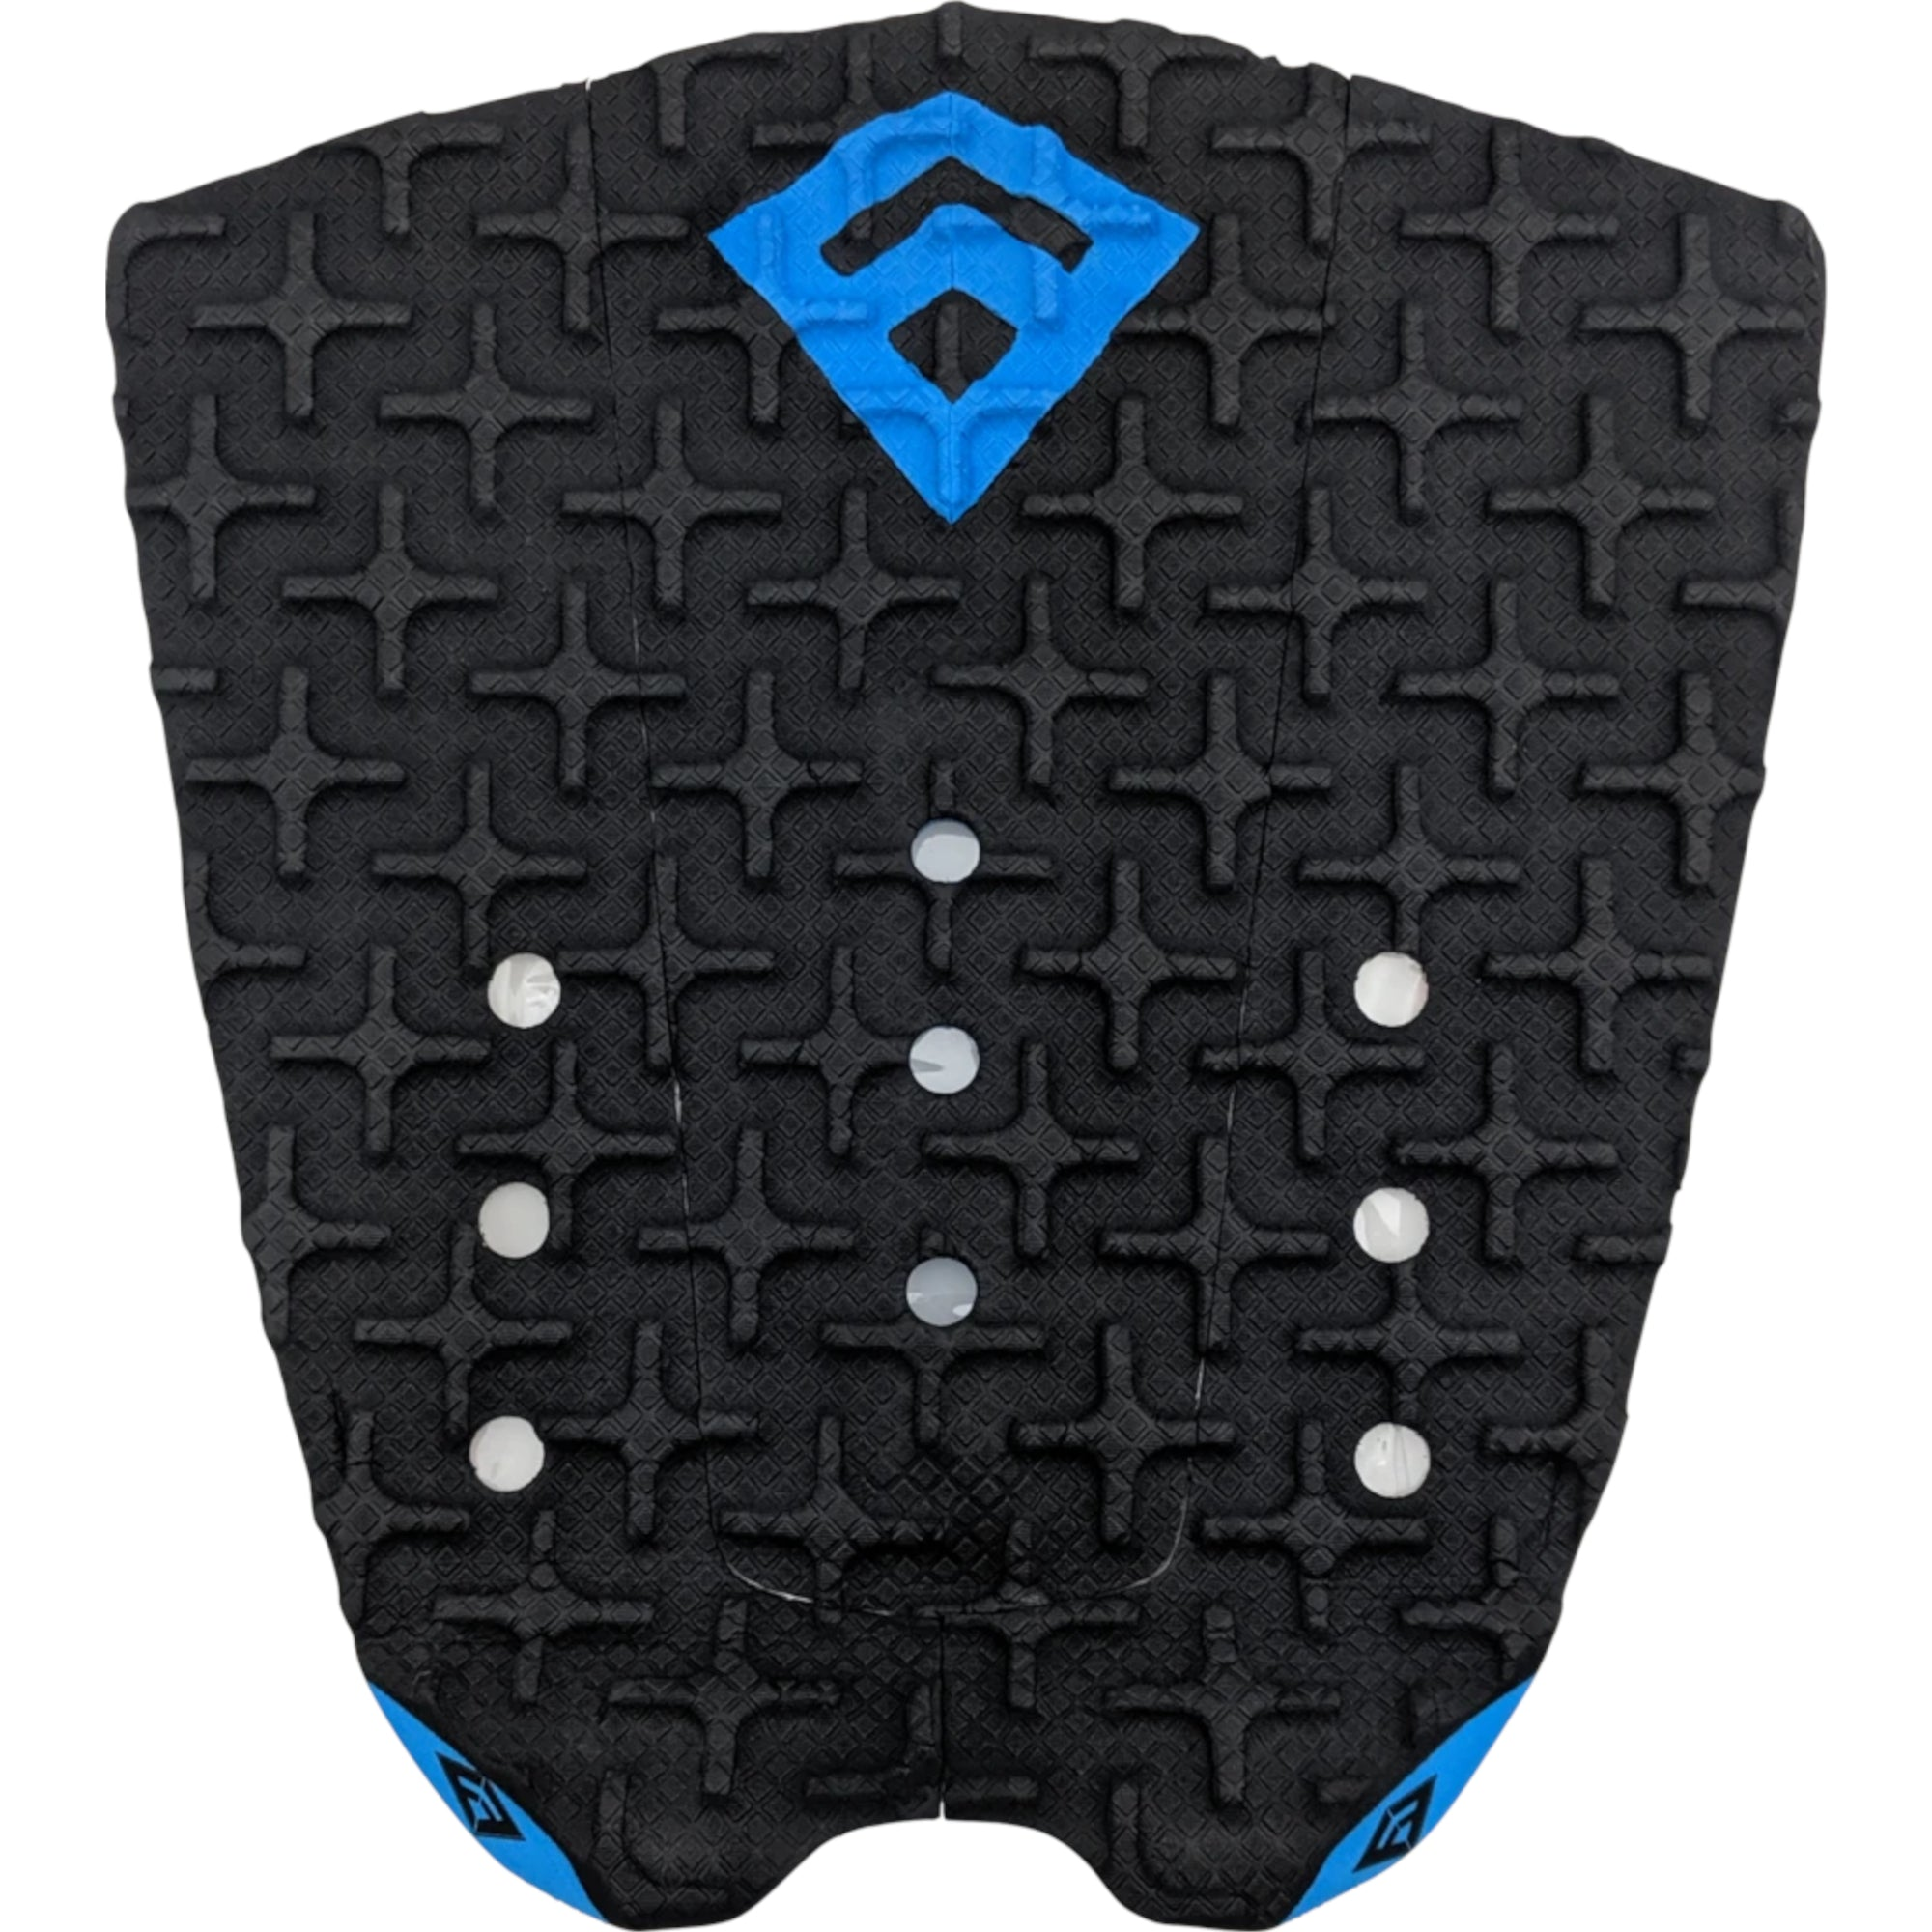 Freak Phantom Flare Traction Pad - Black/Blue